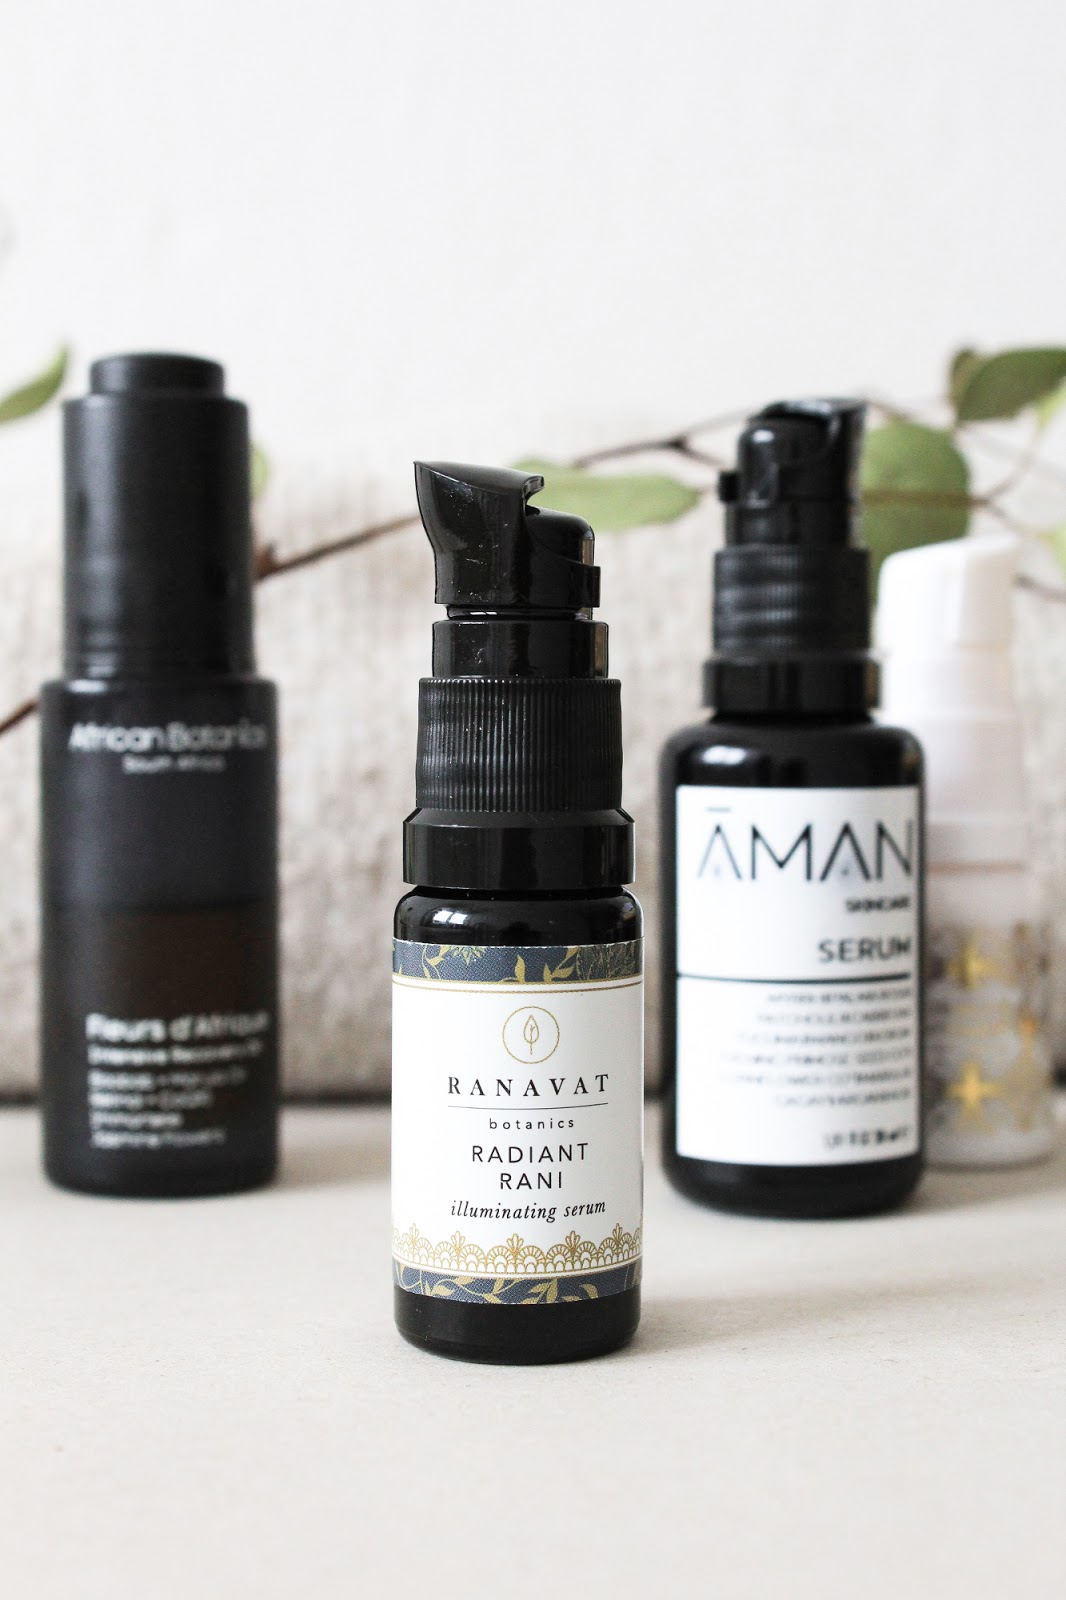 Ranavat Botanics Radiant Rani Illuminating Serum Beauty Heroes Indie Beauty